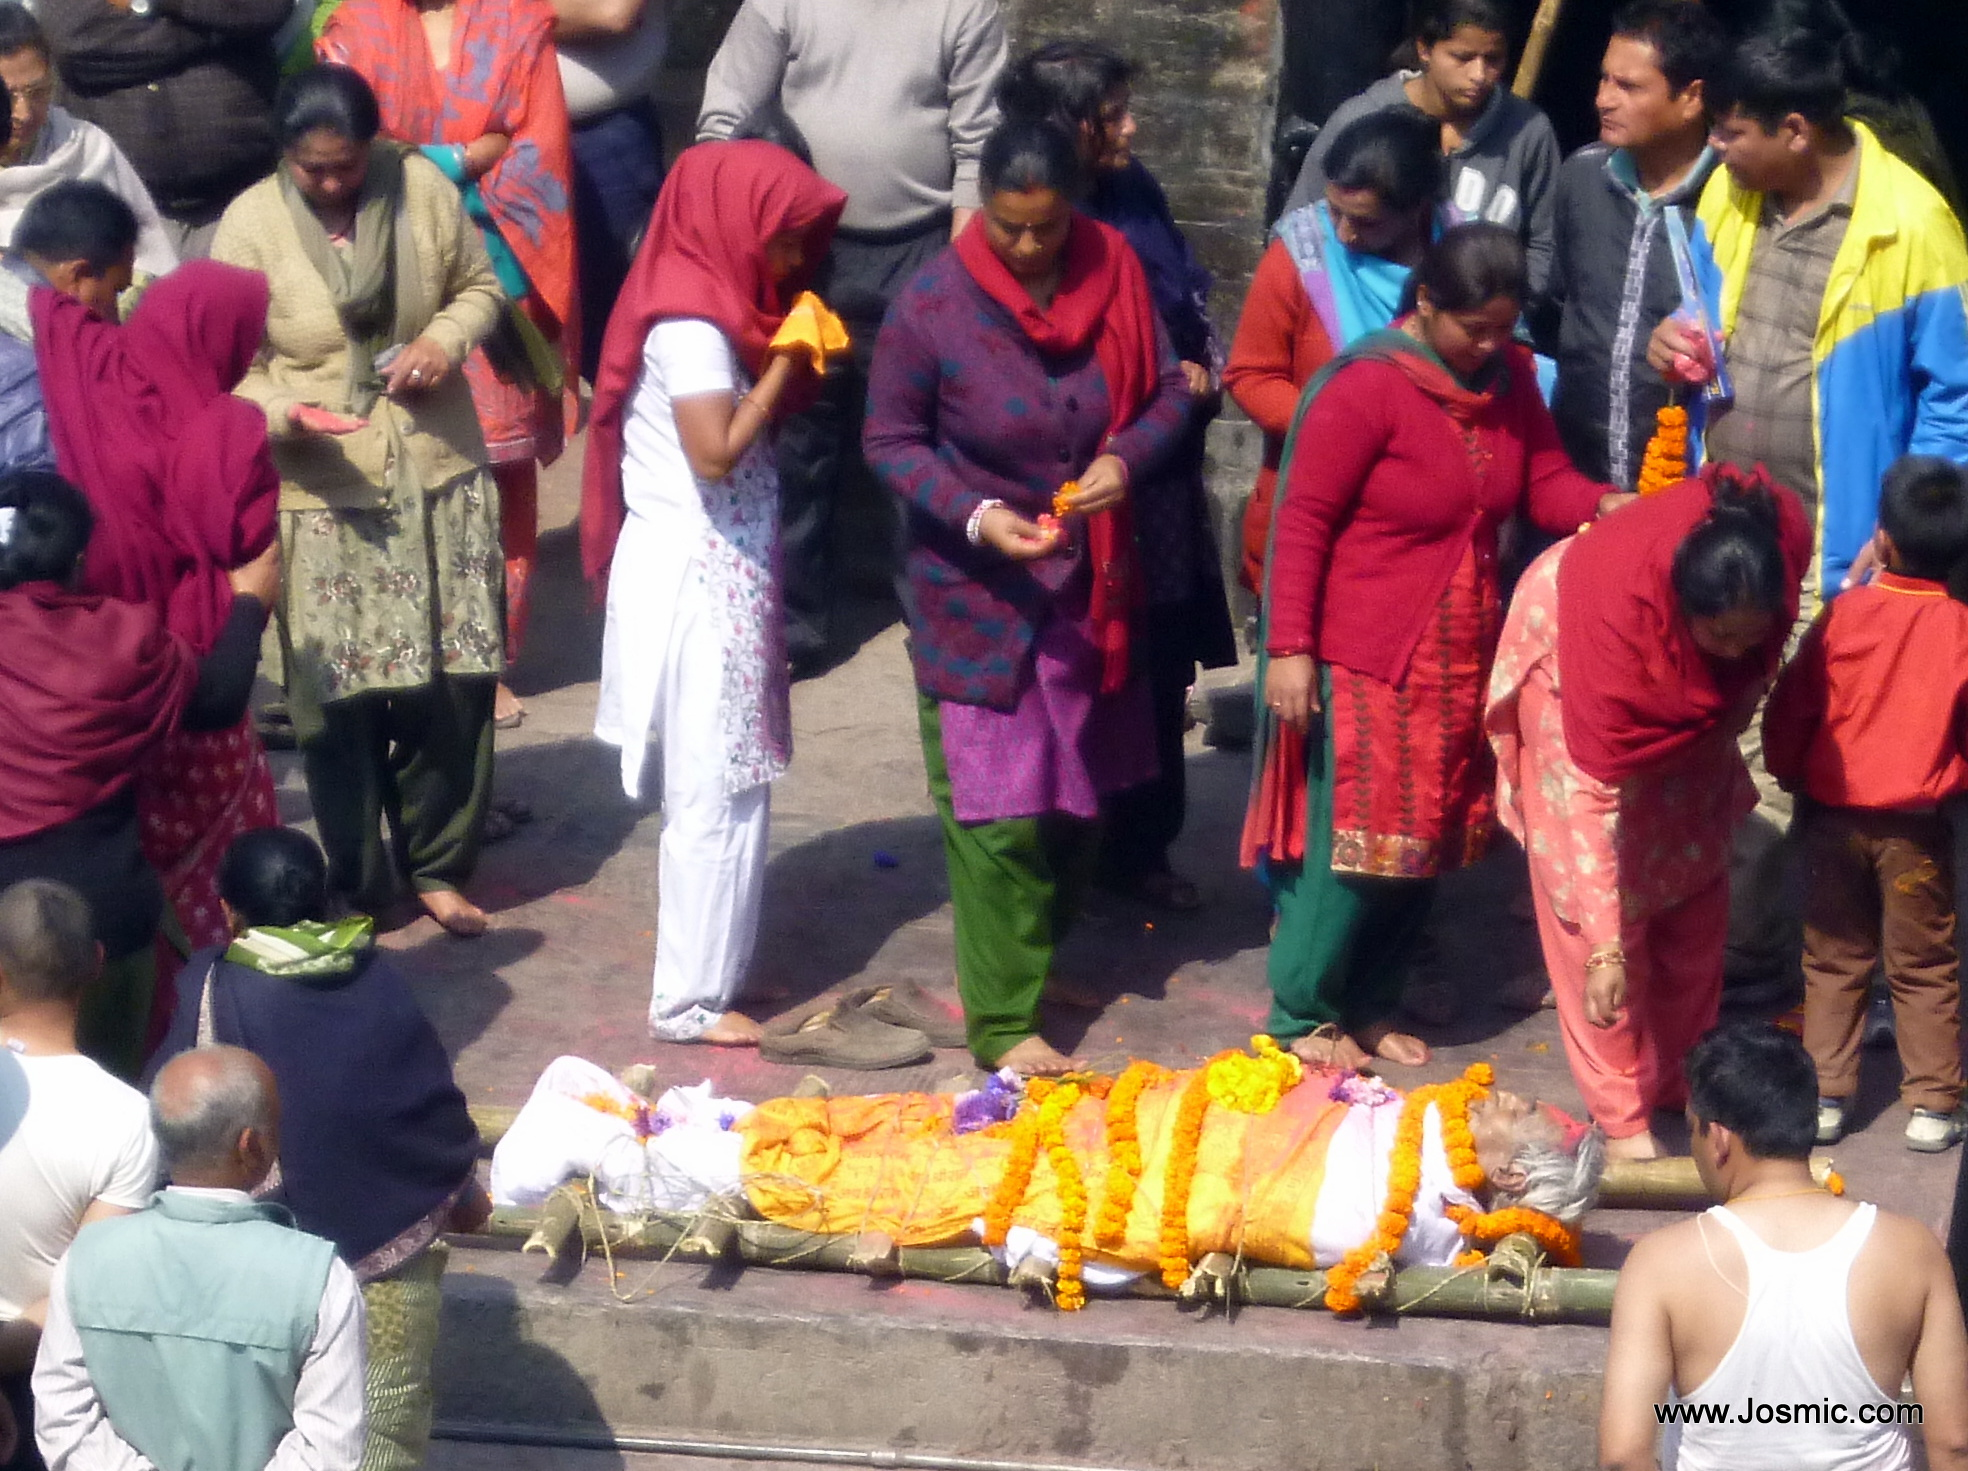 Hindu cremation, scattering blooms on the body